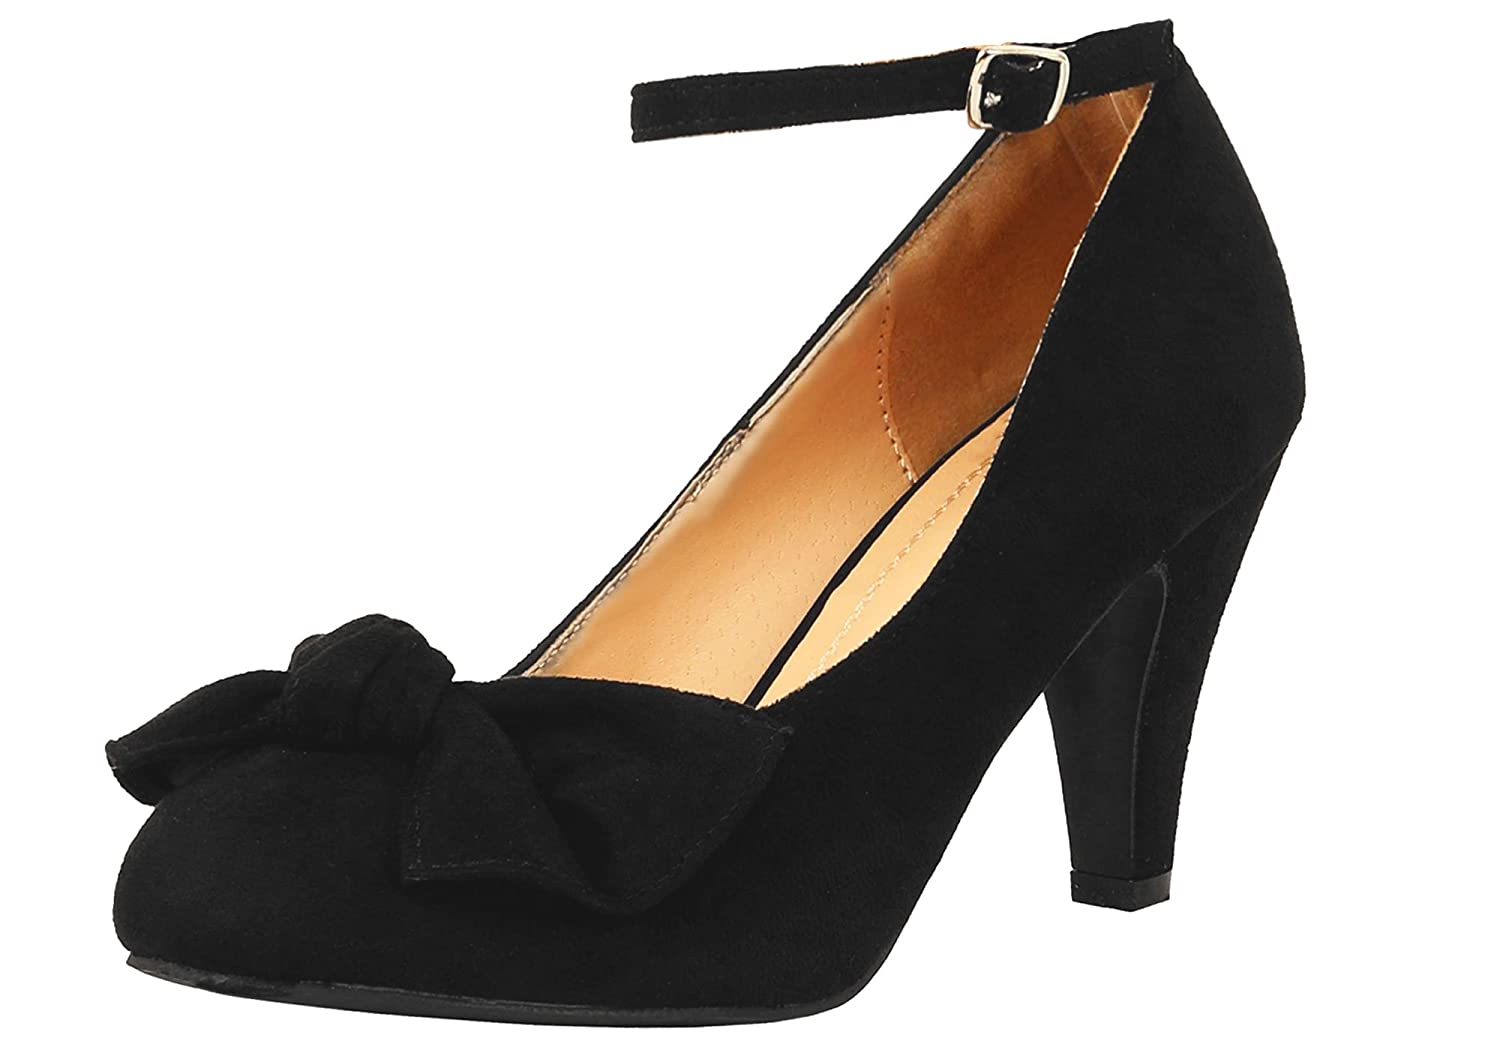 1940s Style Shoes, 40s Shoes Chase & Chloe Women's Retro Kimmy-67 Bow Front Faux Suede Mary-Jane Pumps $39.89 AT vintagedancer.com